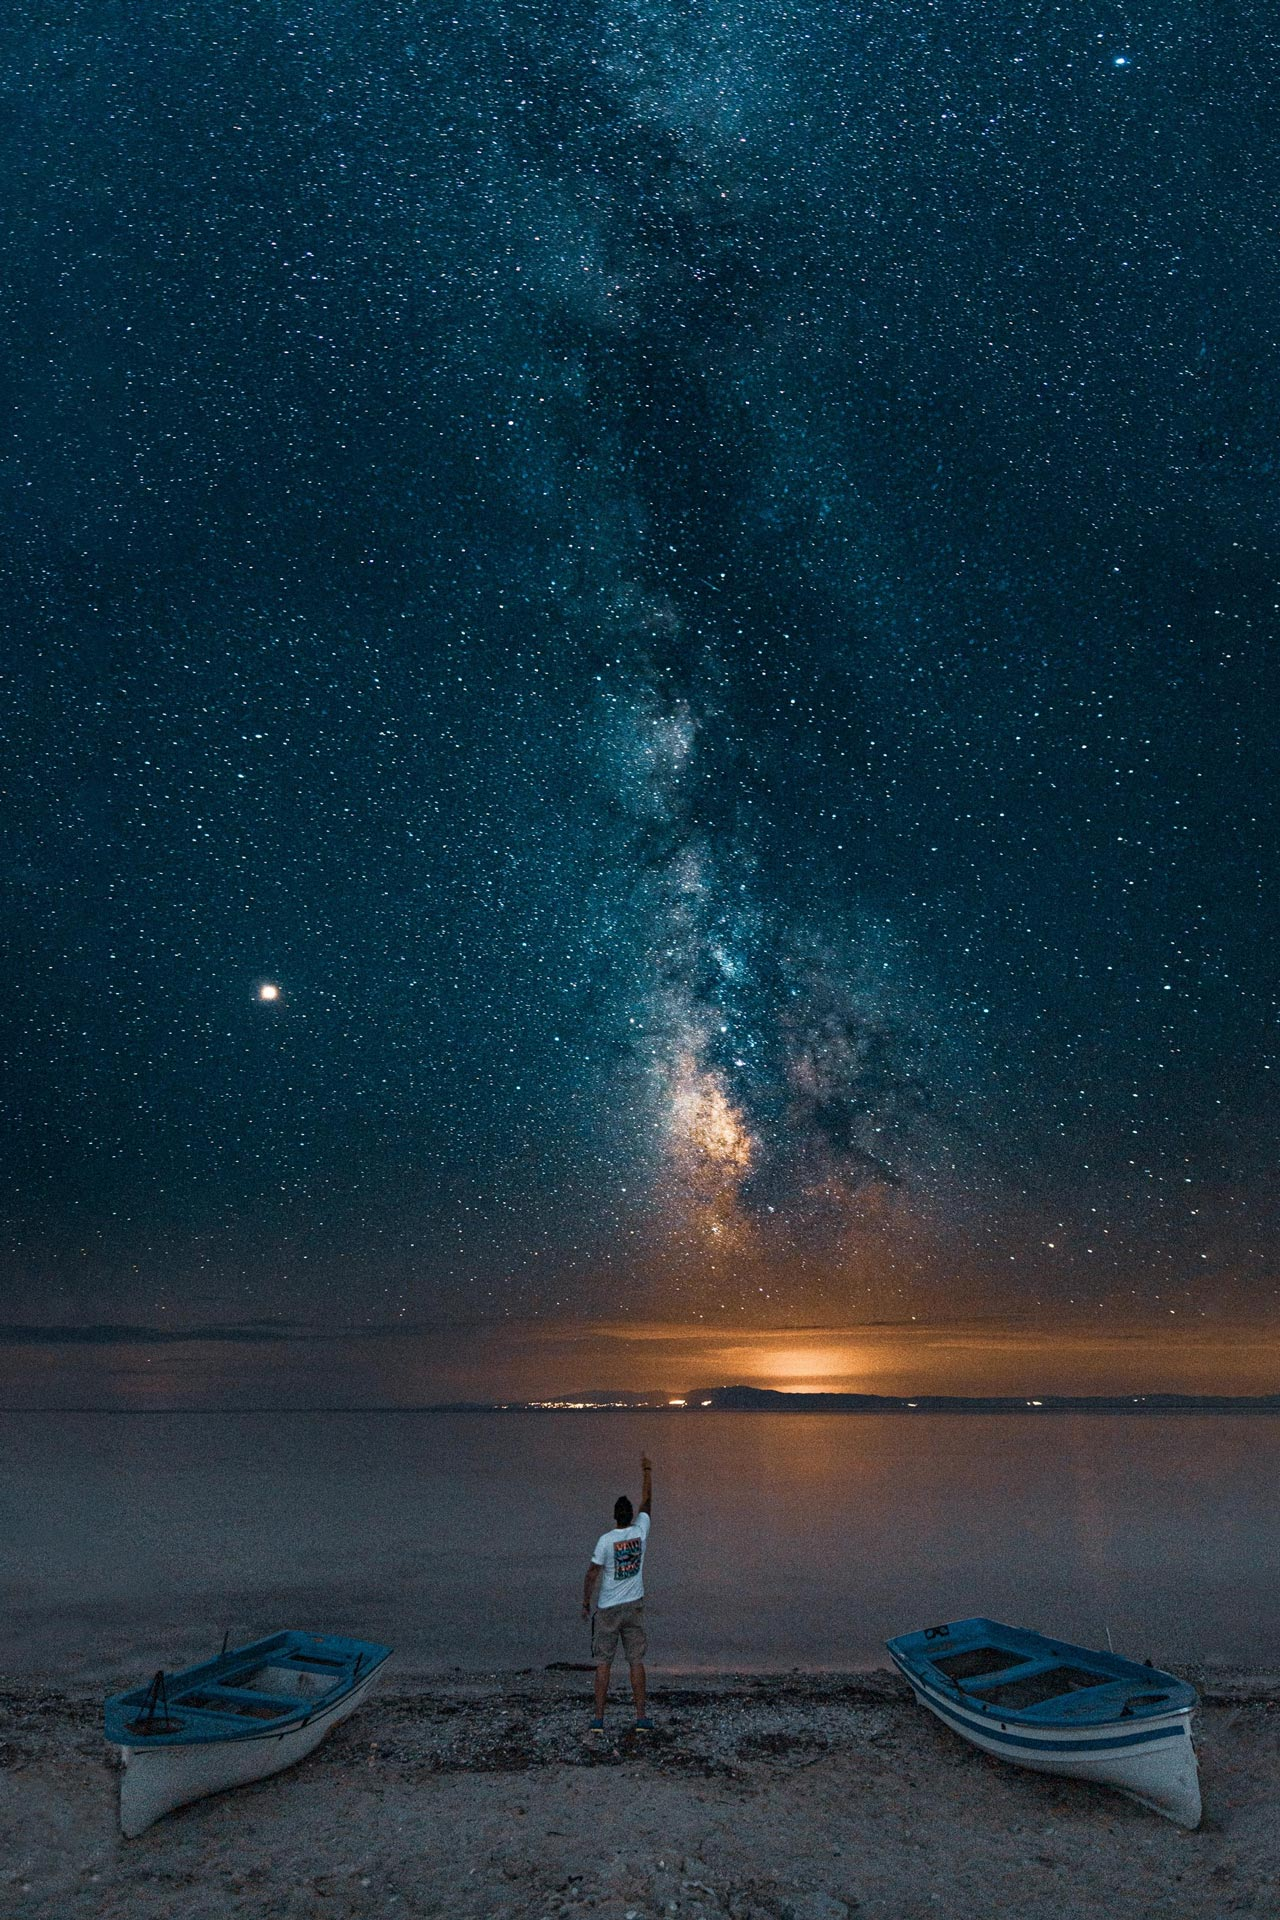 Stargazing at Posidi, Halkidiki-Paul Gilmore